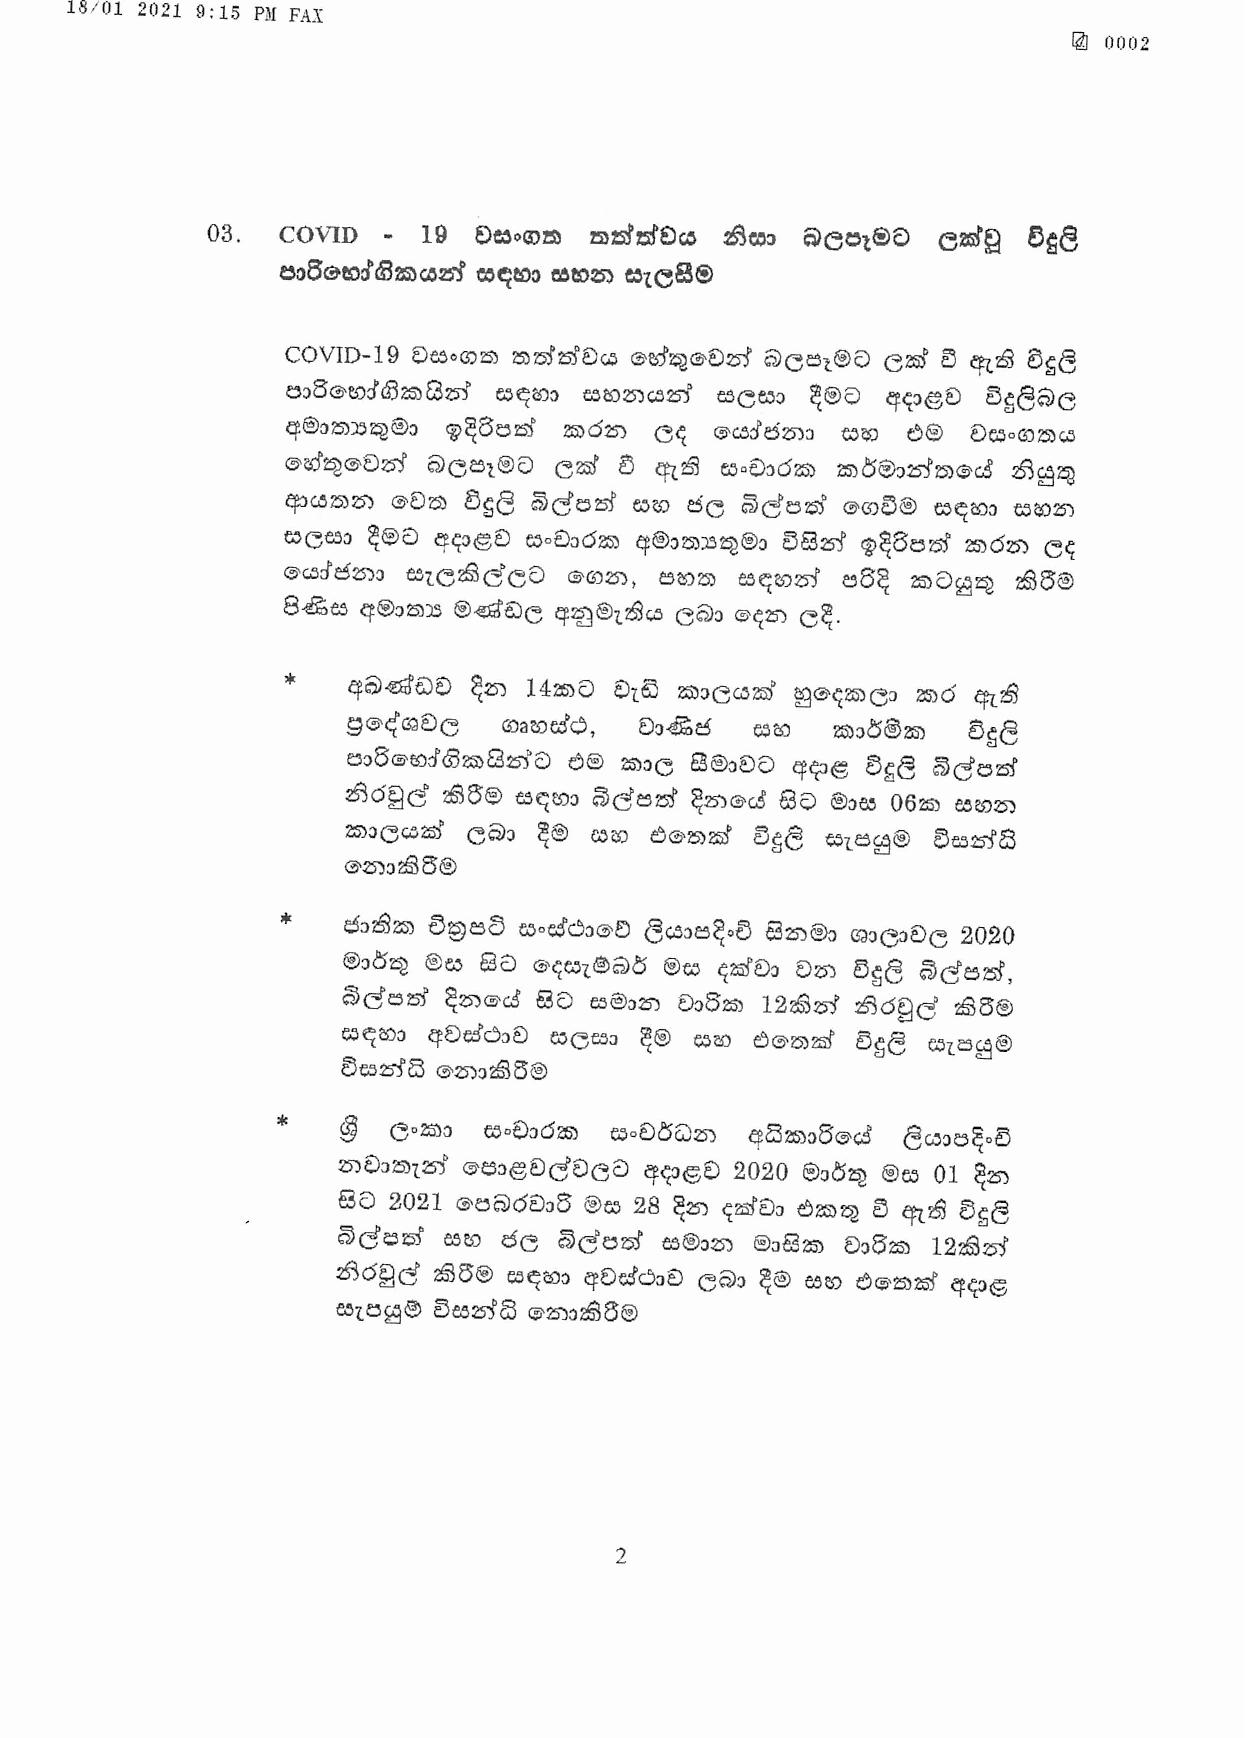 Cabinet Decision on 18.01.2021 page 002